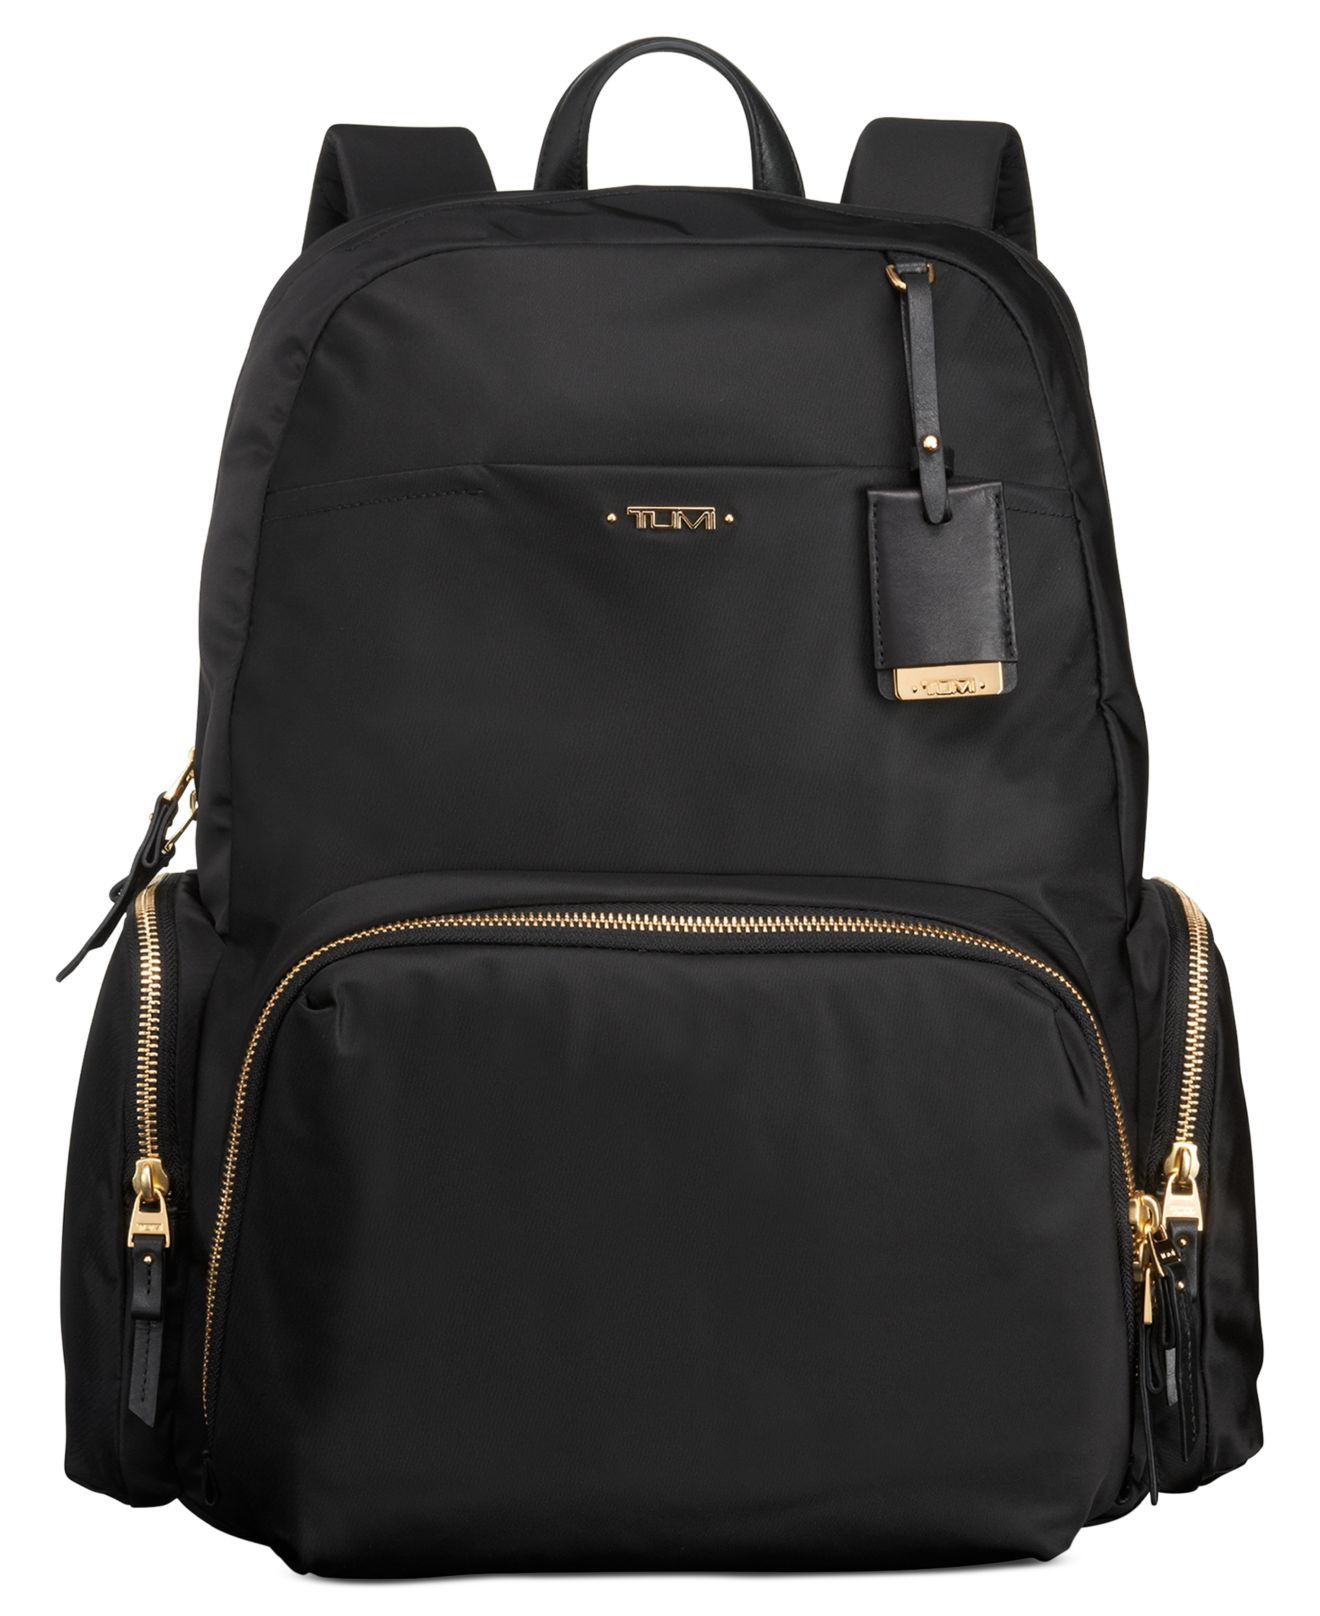 Tumi. Since , TUMI has been creating world-class business and travel essentials, designed to upgrade, uncomplicate, and beautify all aspects of life on the move.